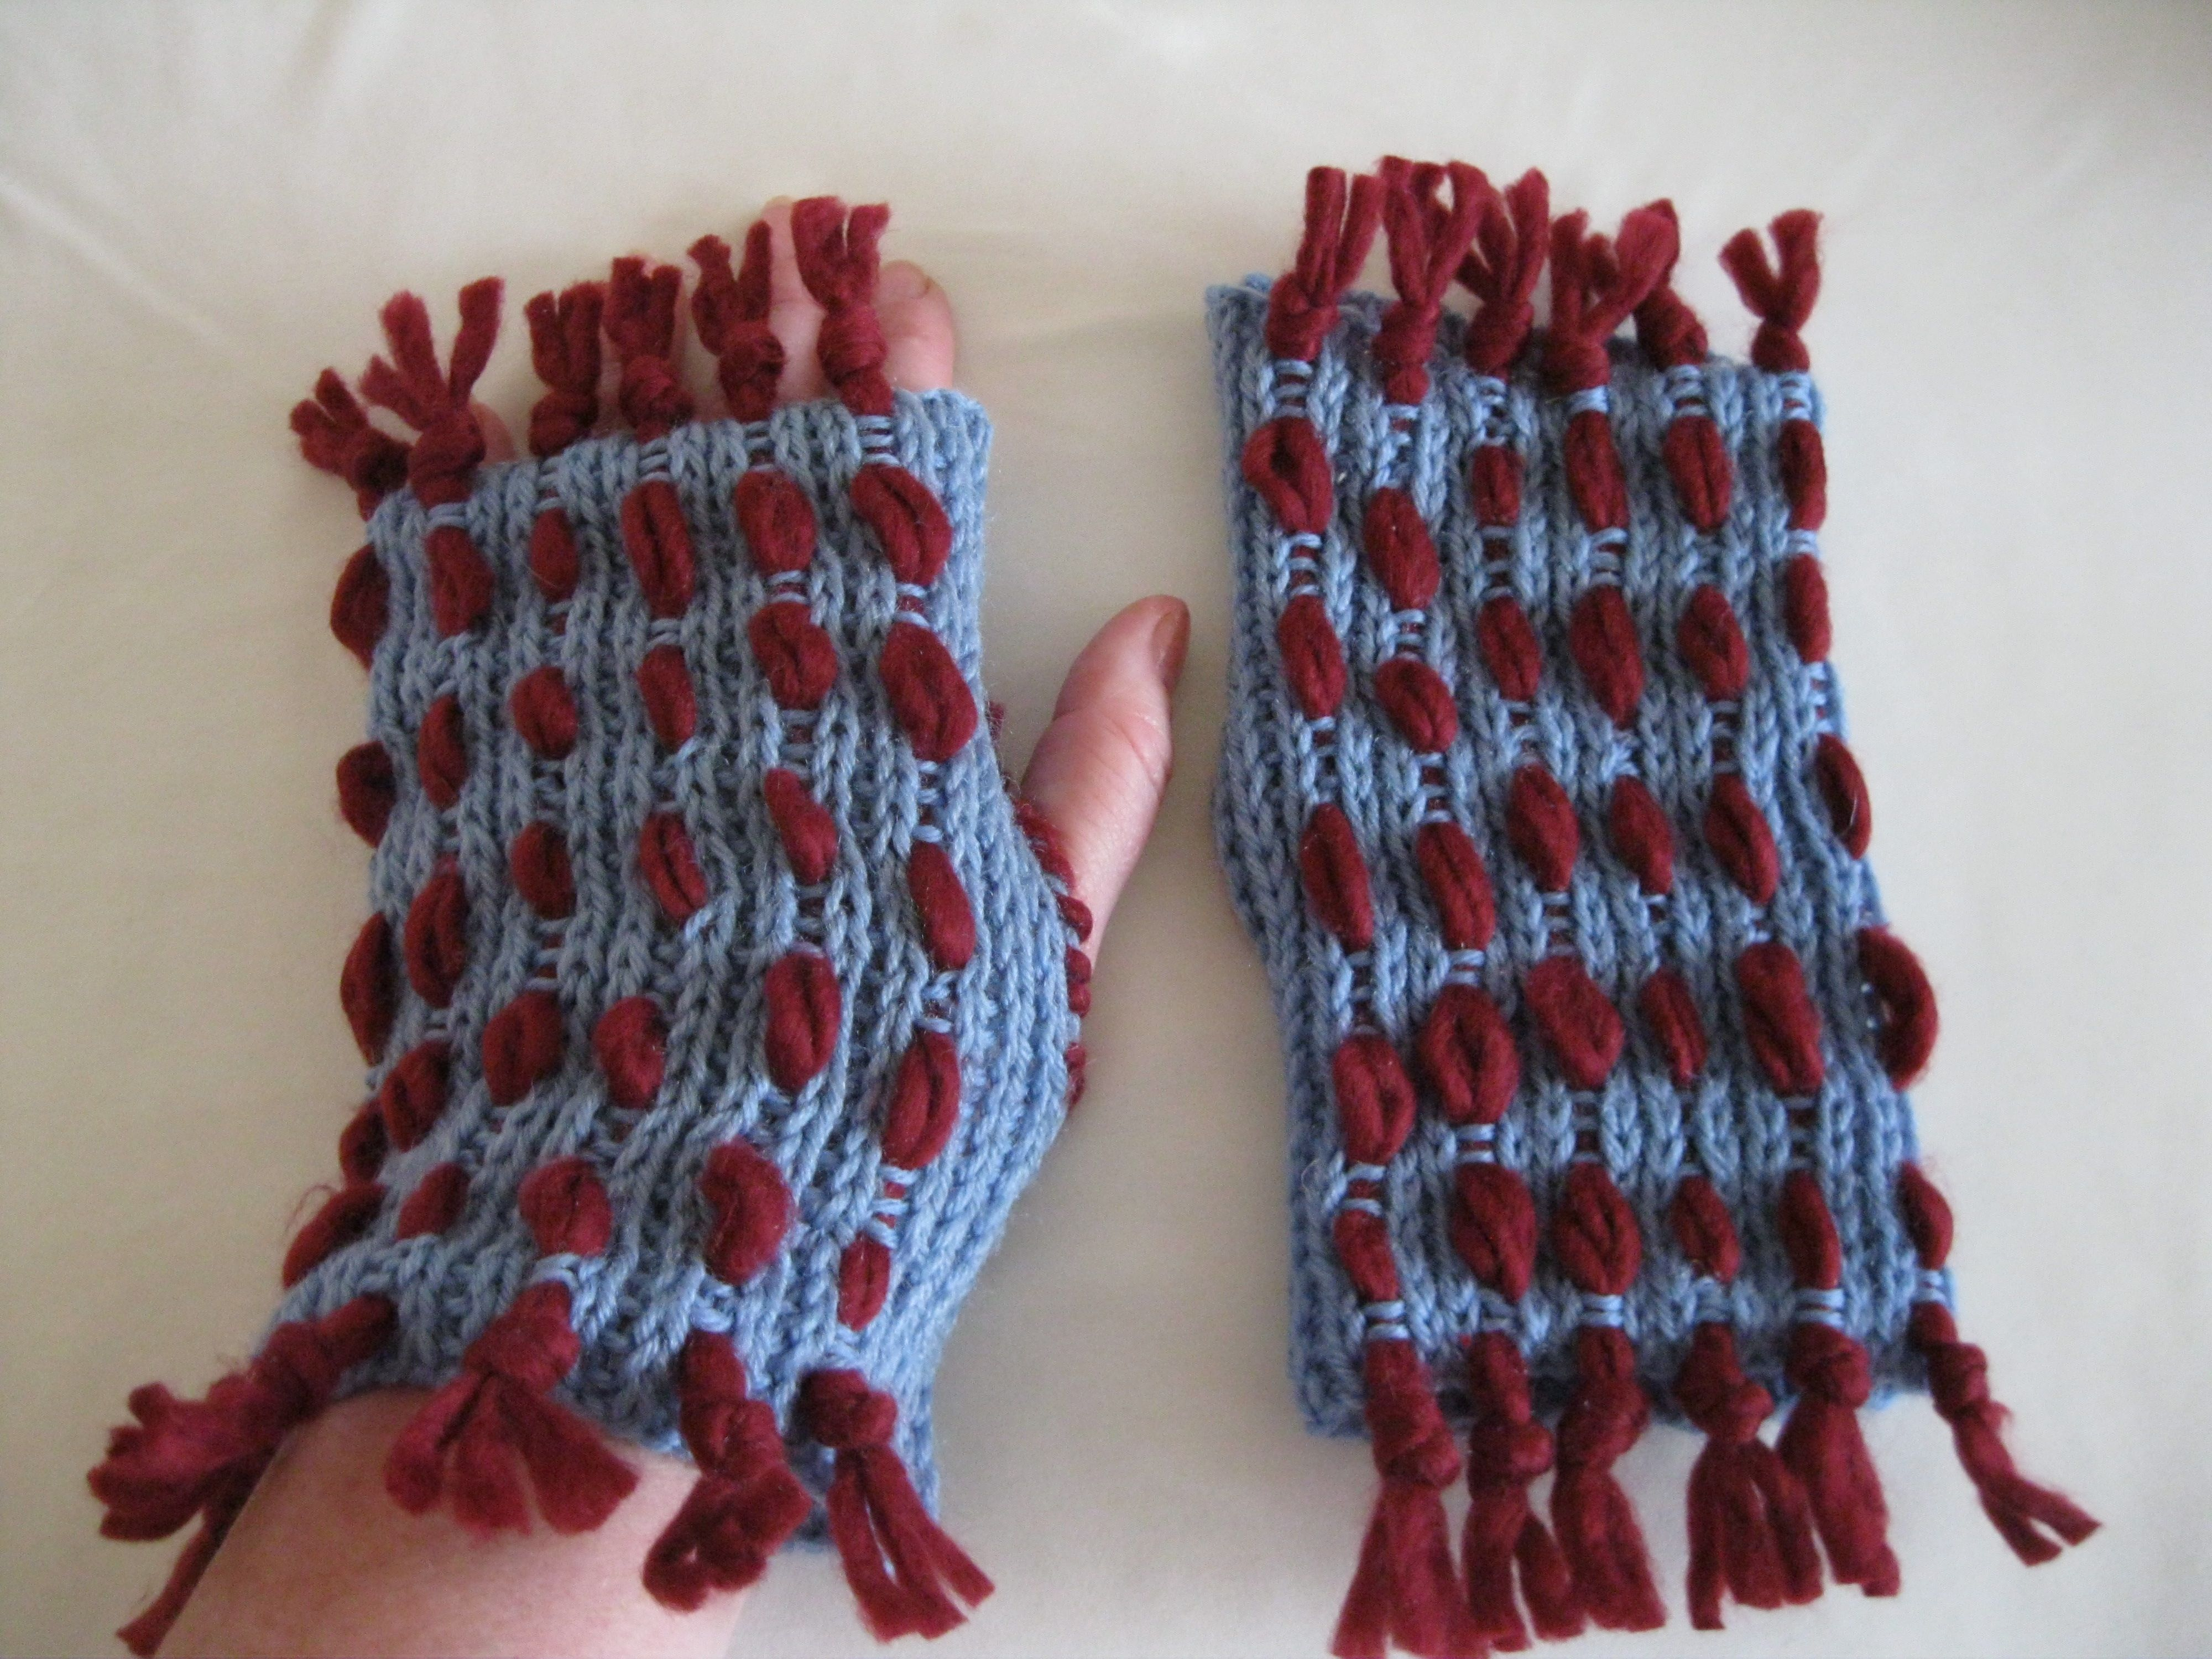 Hand-knitted mittens.